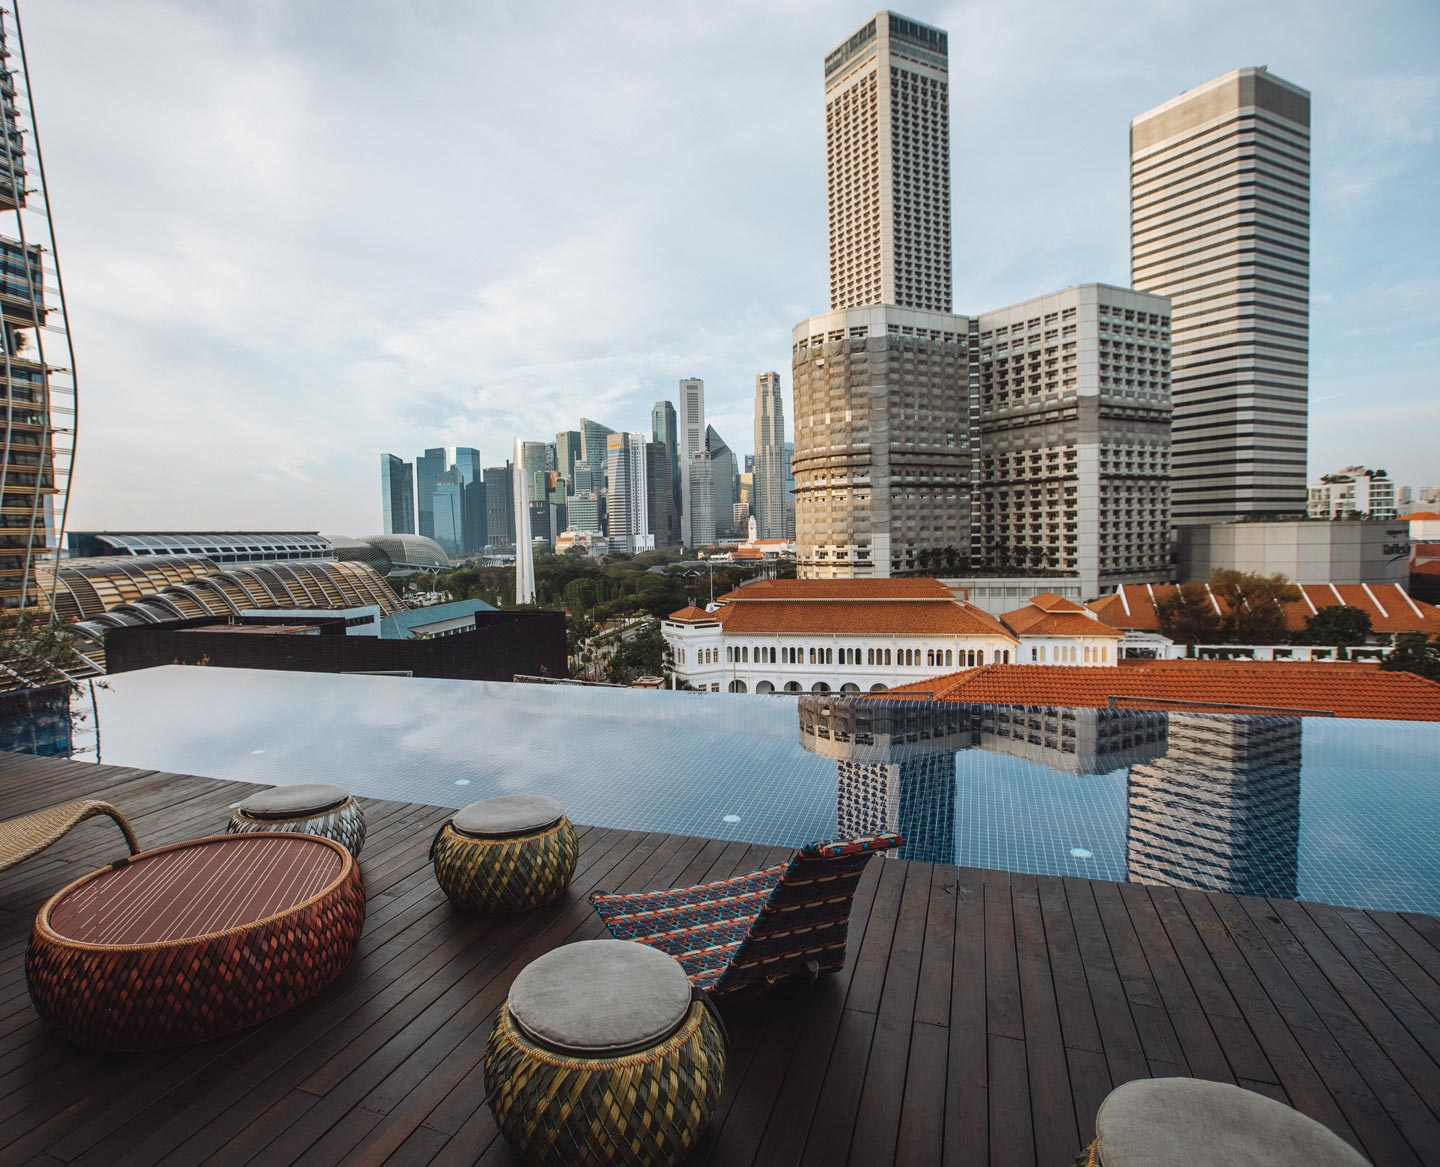 naumi-hotel-singapore-rooftop-pool-2-day-itinerary